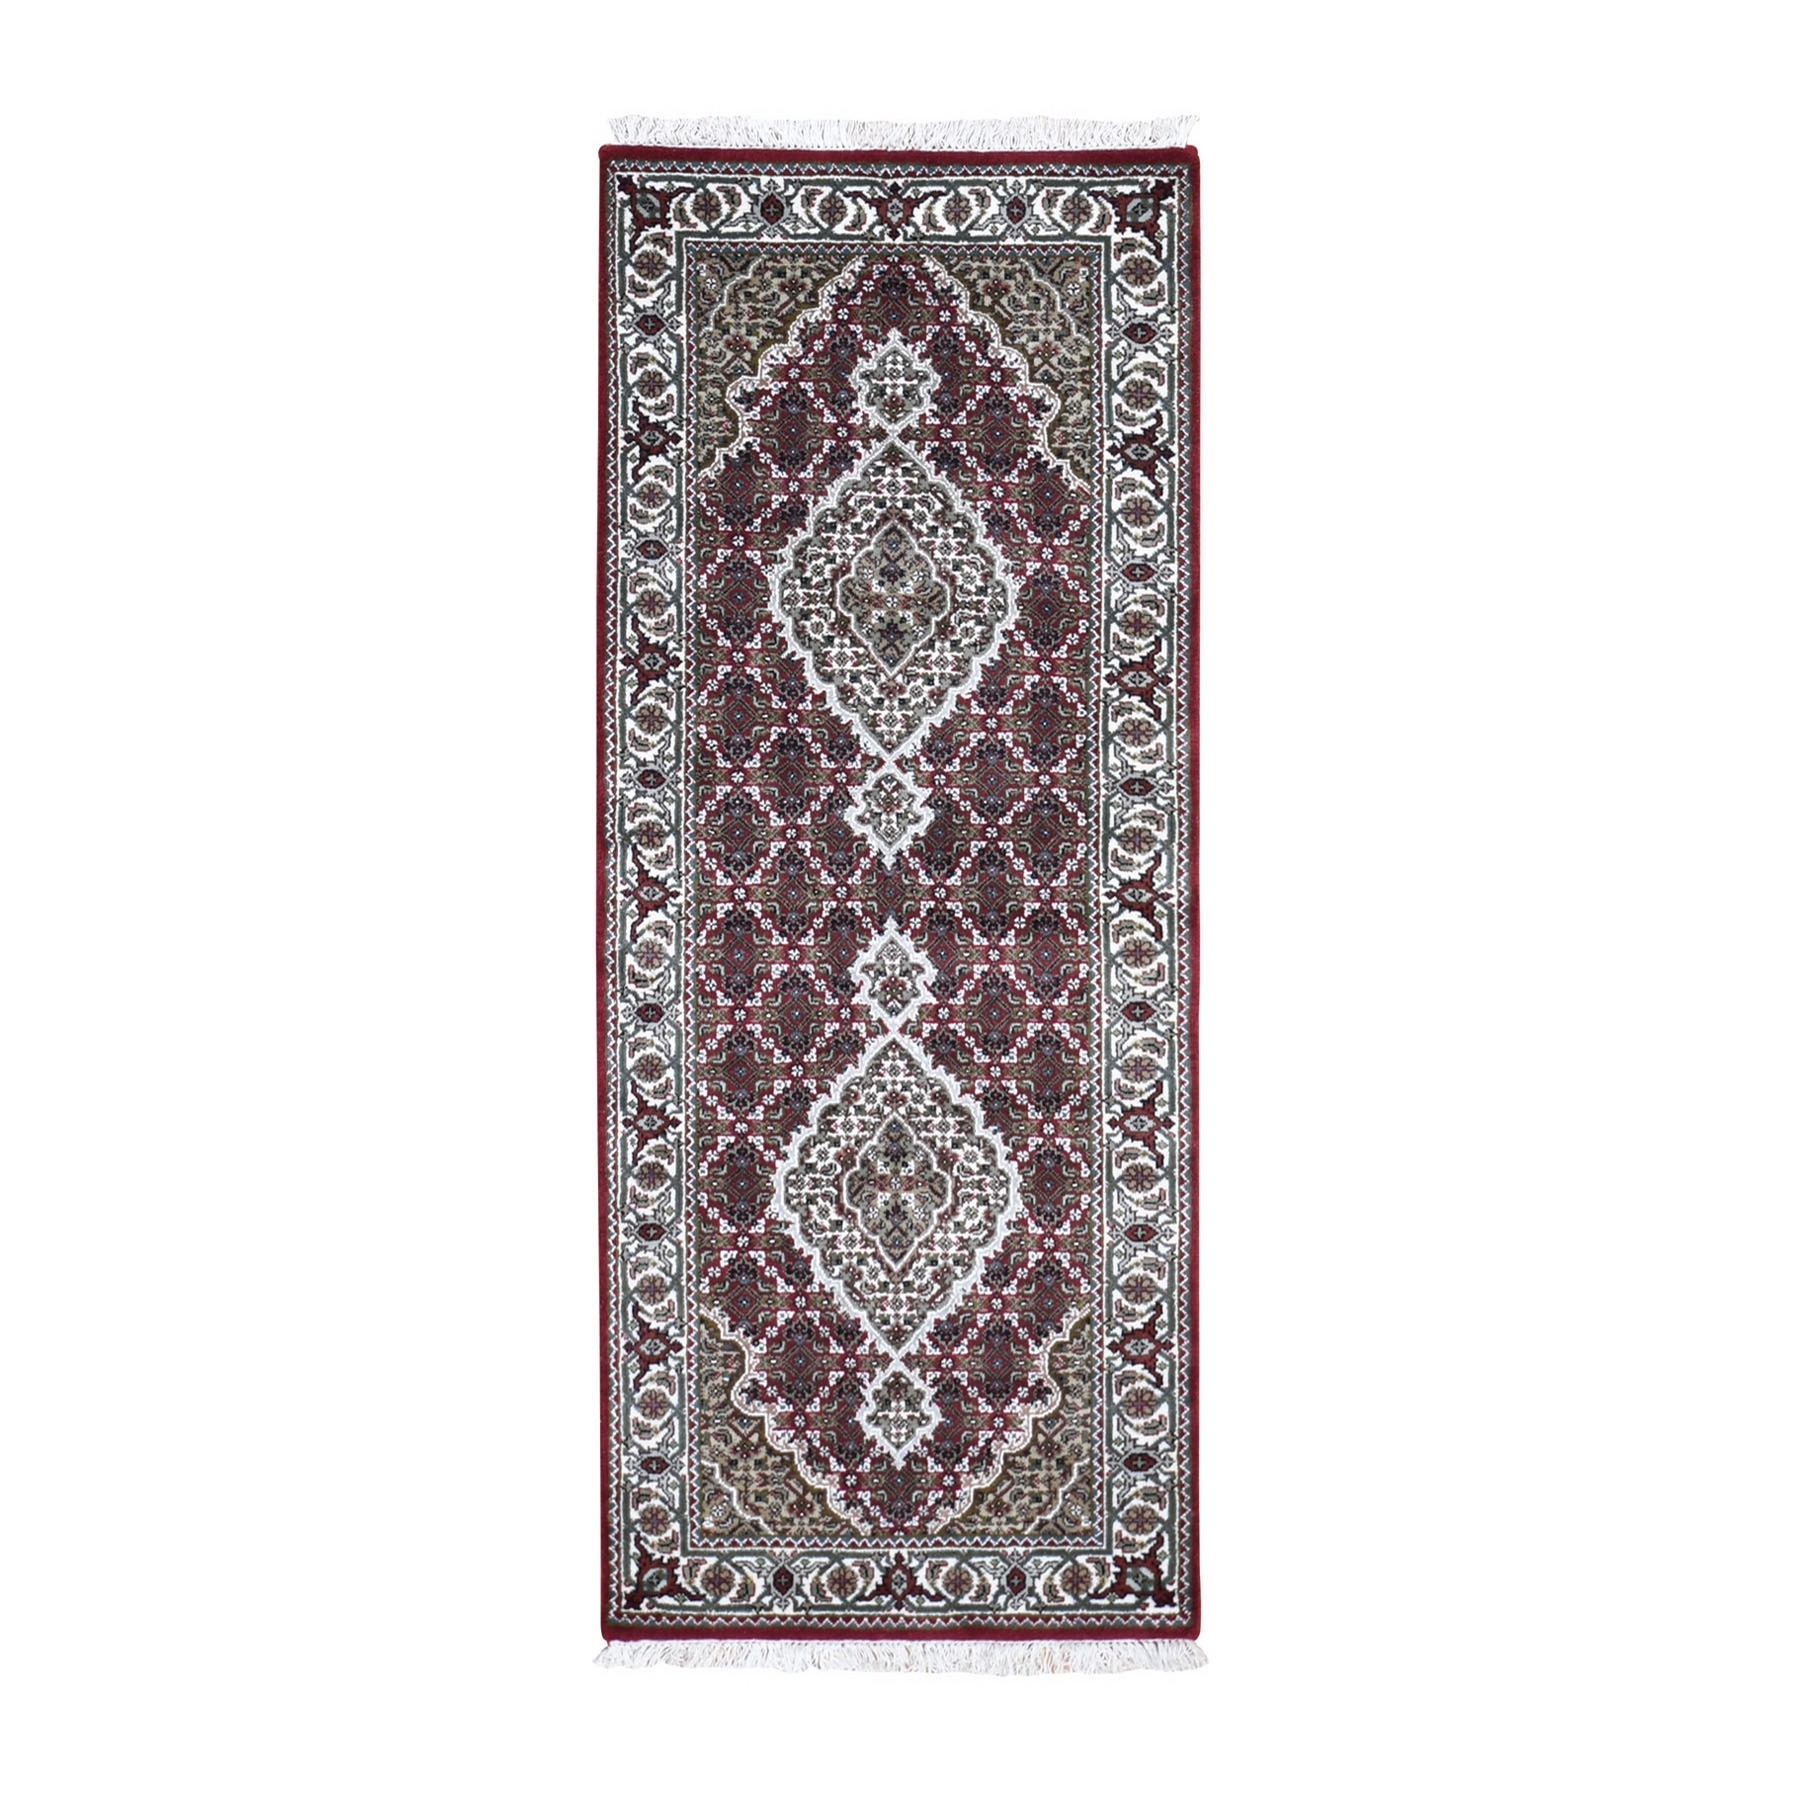 Pirniakan Collection Hand Knotted Red Rug No: 0199116